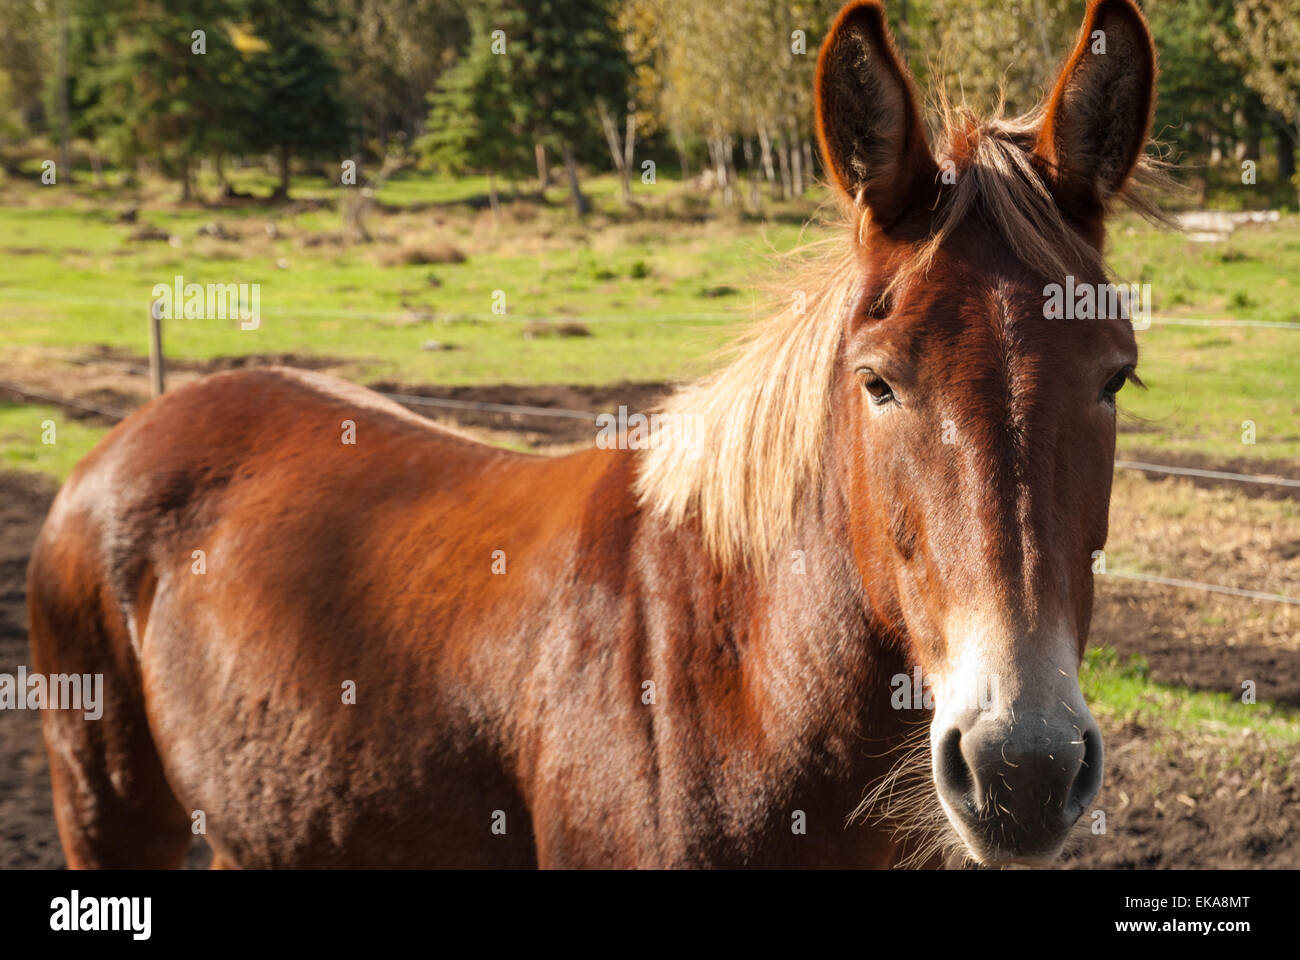 closeup view of a mule, Equus asinus x Equus caballus, on a central Alberta farm Stock Photo